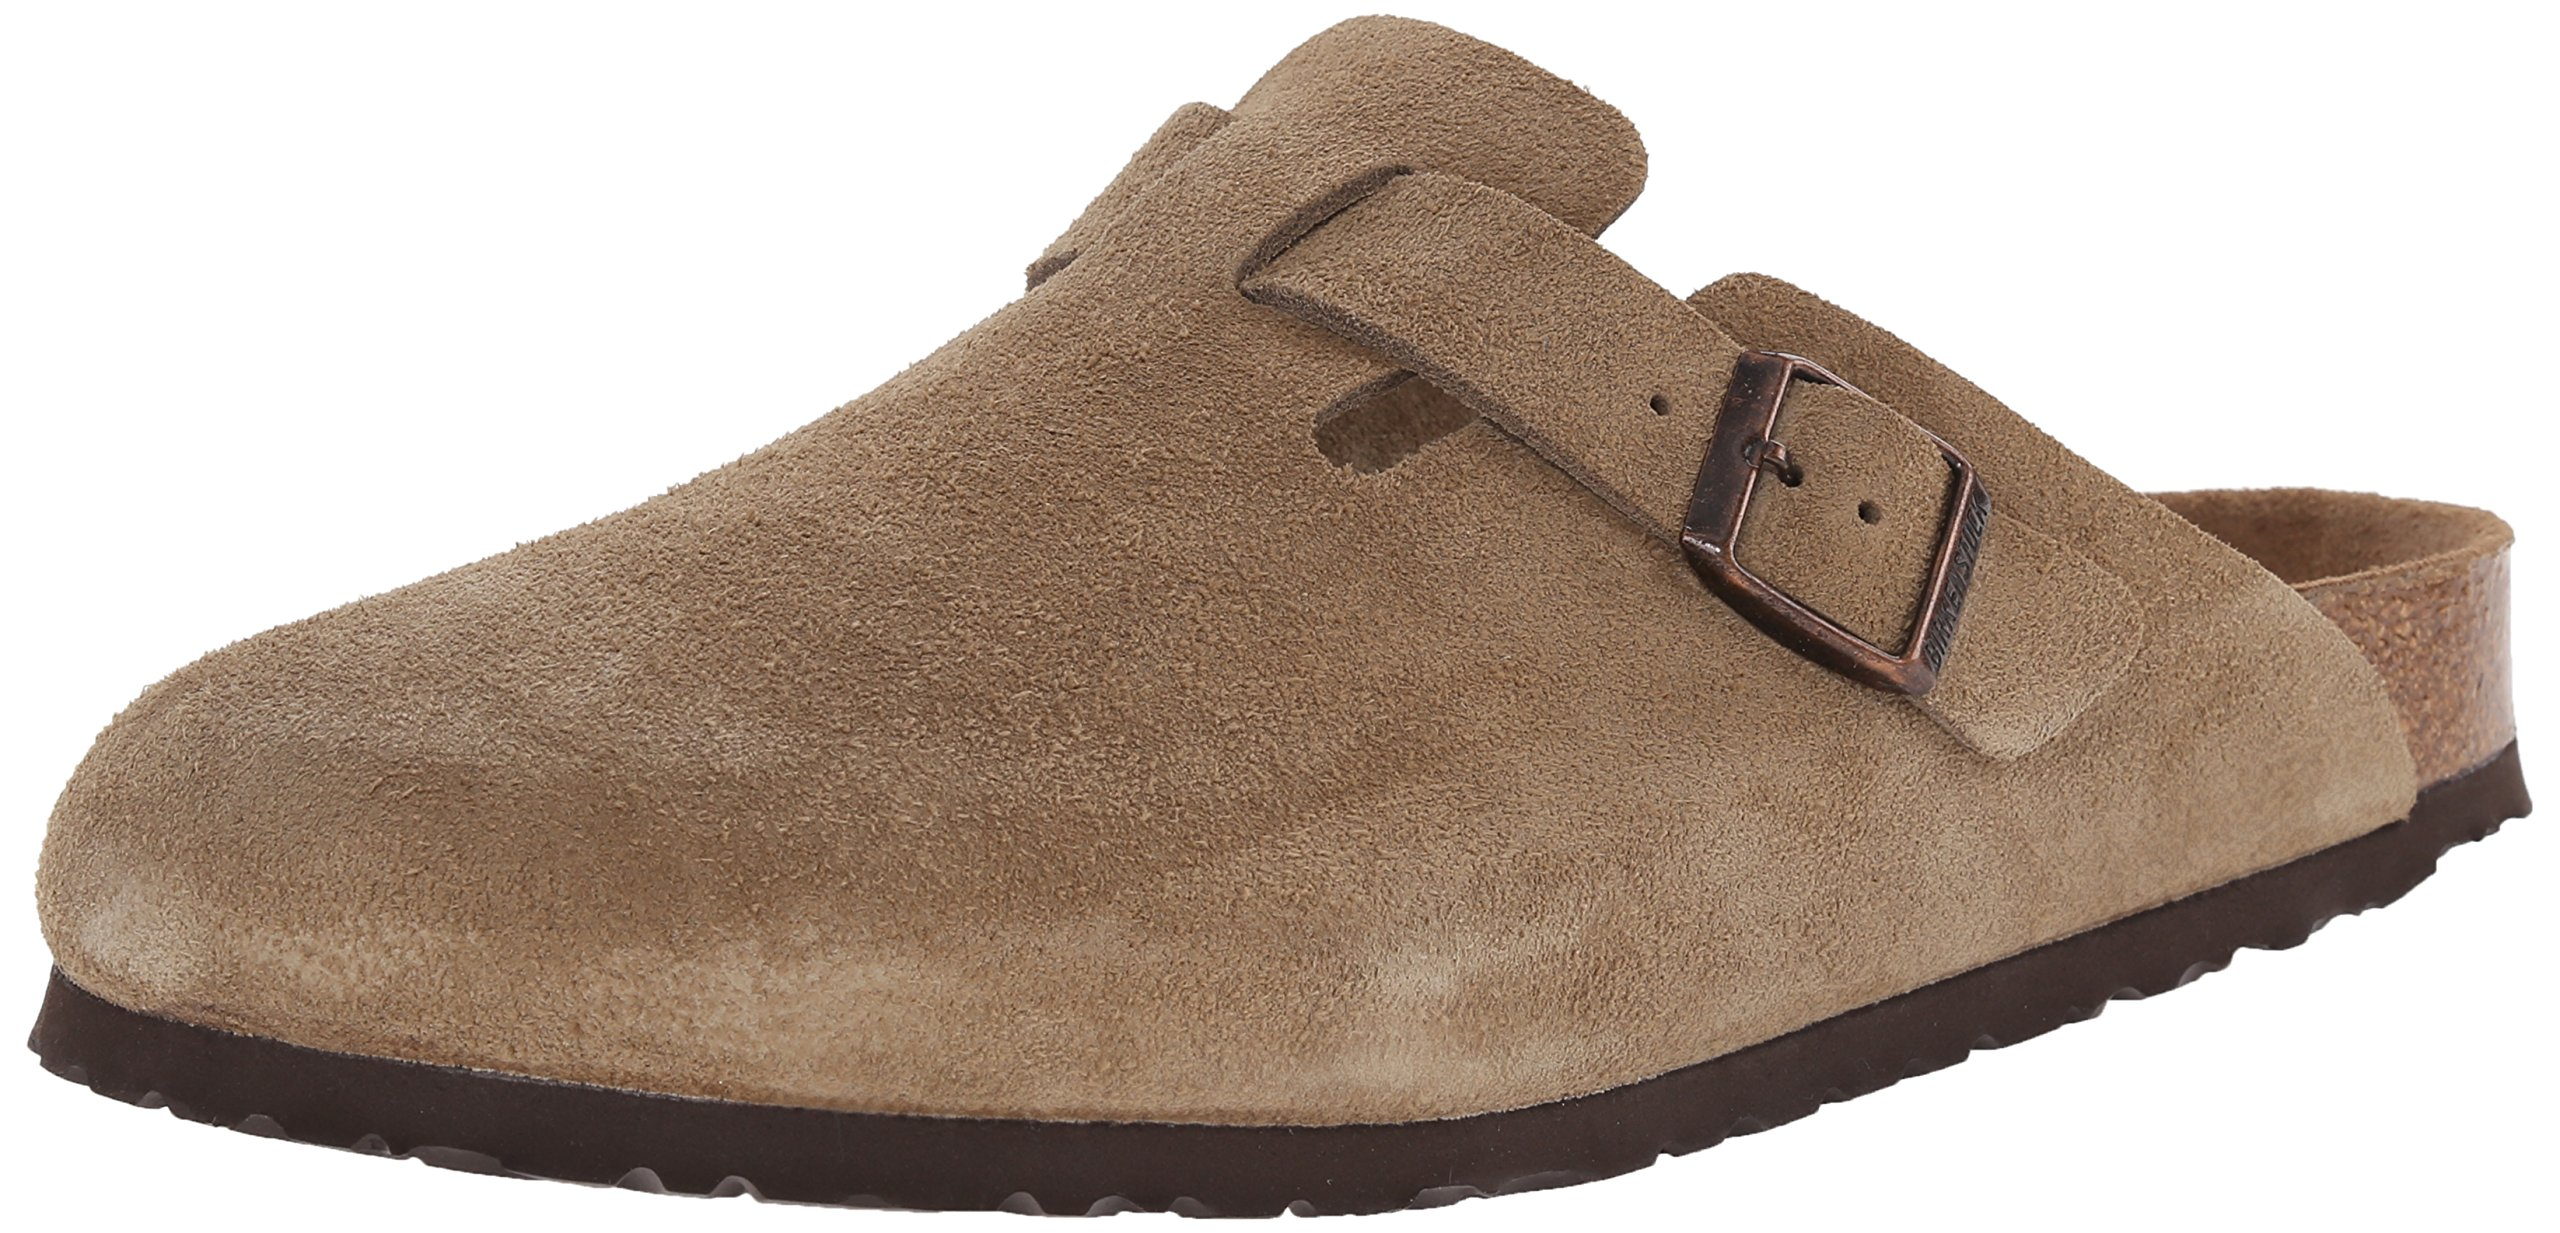 Birkenstock Unisex Boston Soft Footbed, Taupe Suede, 42 M EU